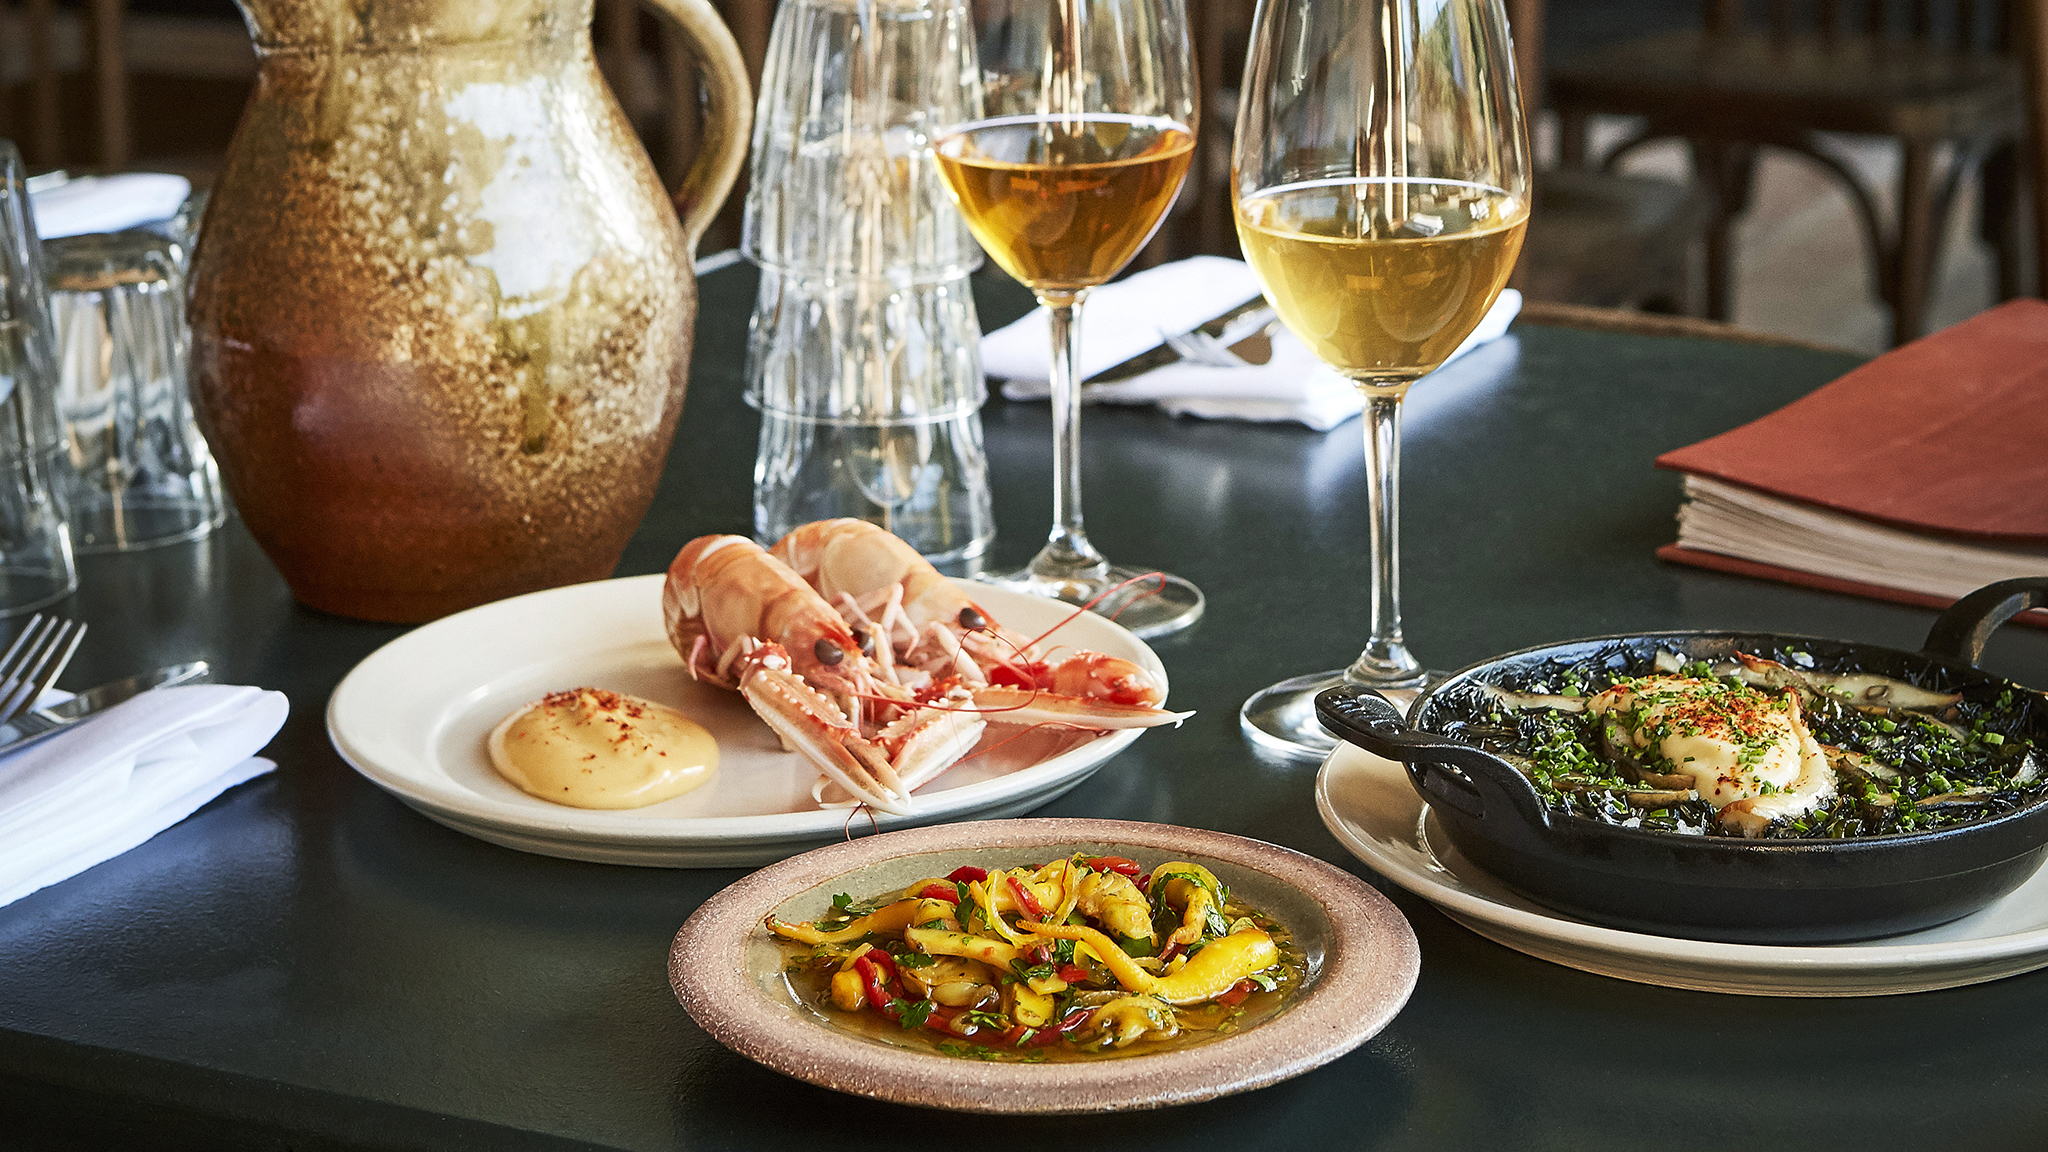 Best seafood restaurants in London: Prawns, cuttlefish, and natural wine at Westerns Laundry, one of the best restaurants in Islington